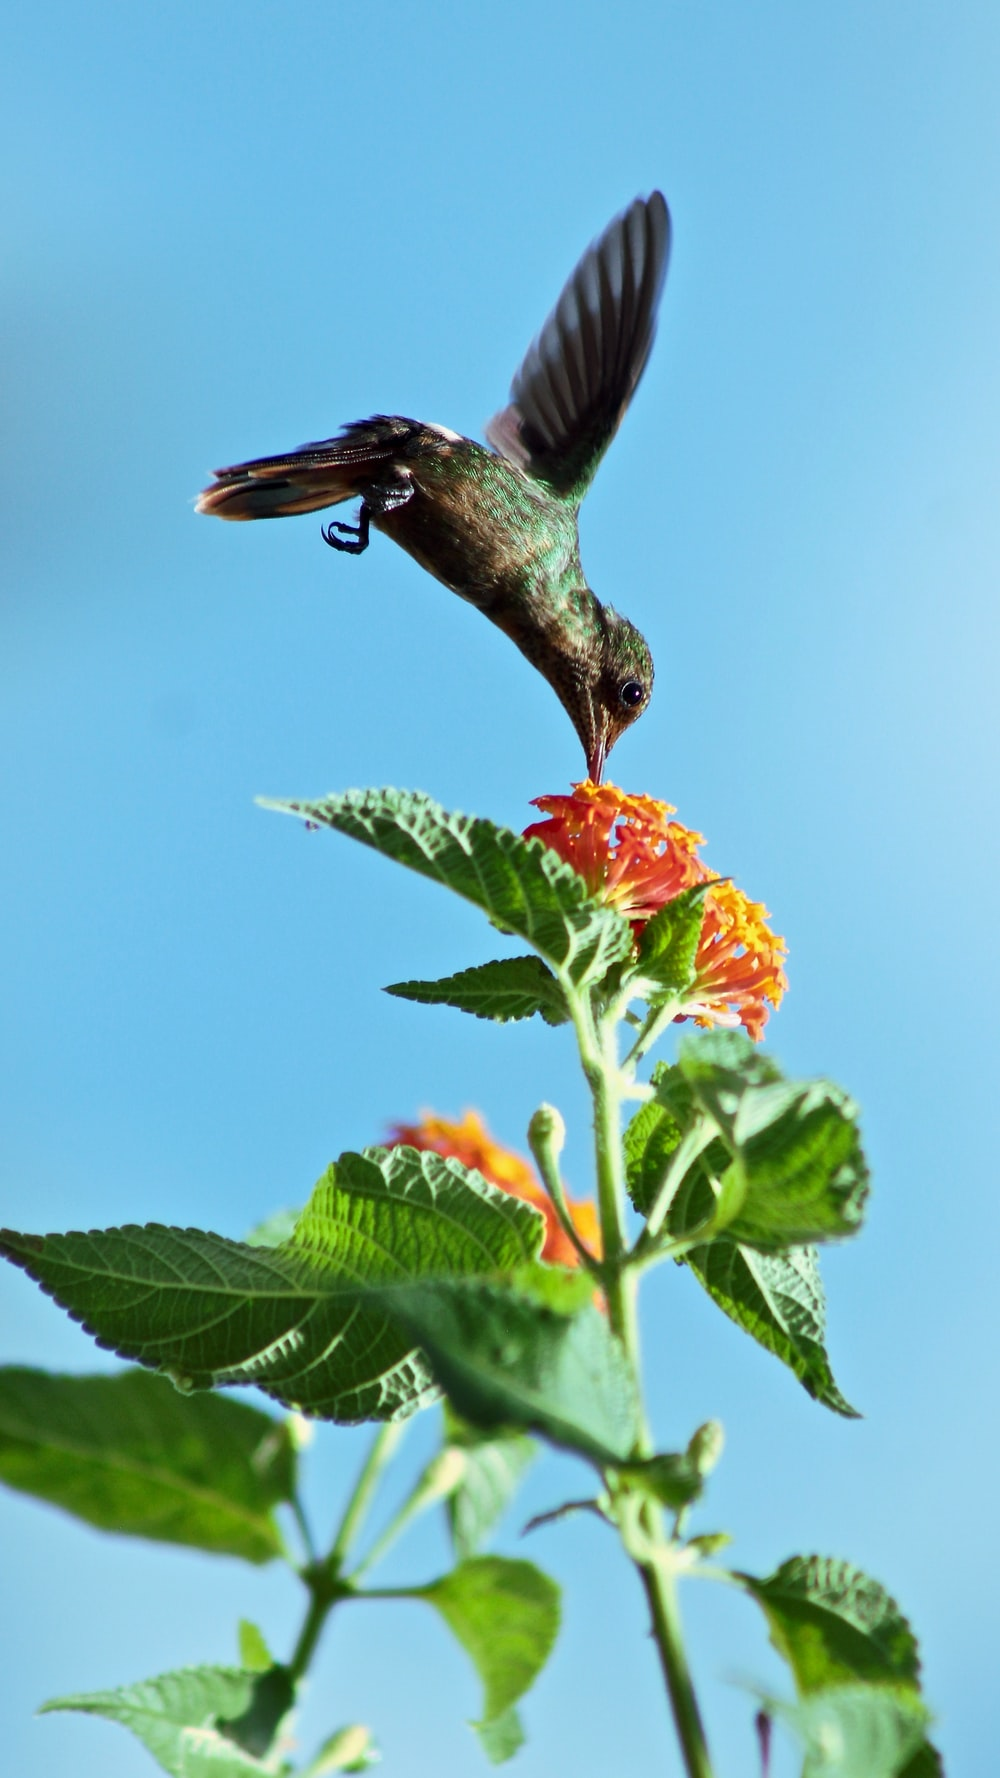 bird flying and biting petaled flower during daytime